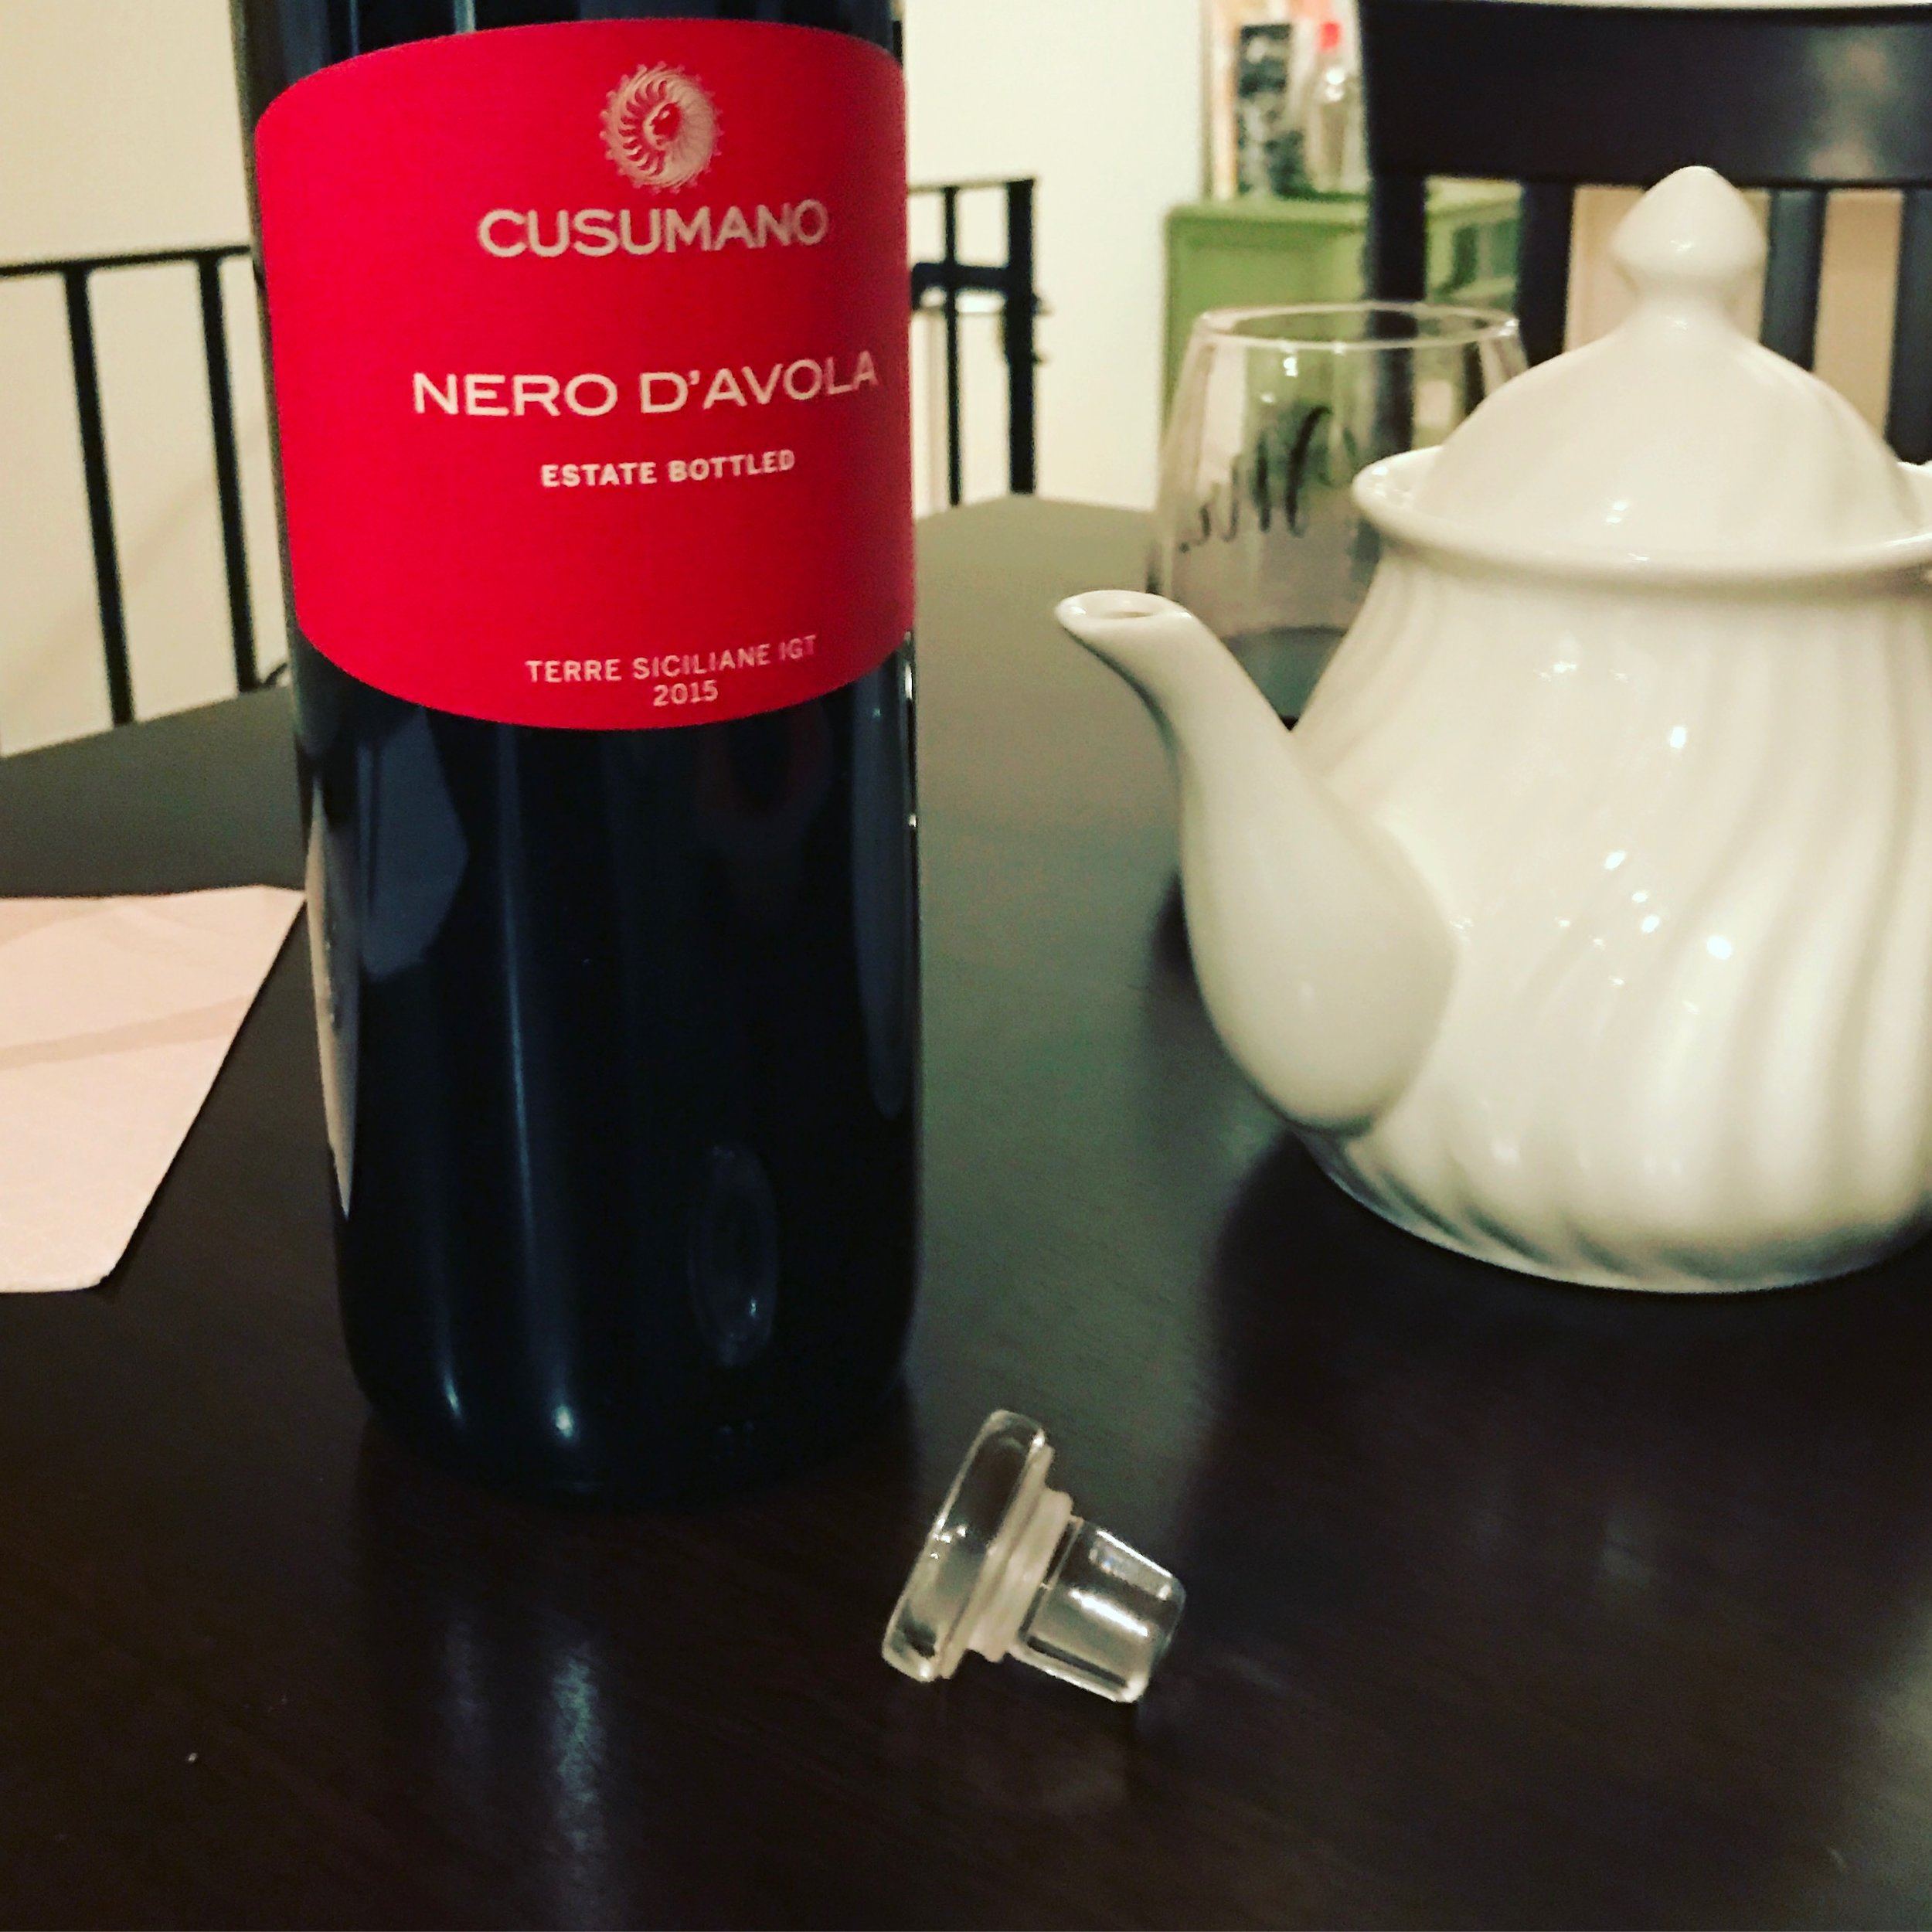 Who needs a cork, or a corkscrew for that matter, when there's a crystal glass stopper already on your bottle of wine.